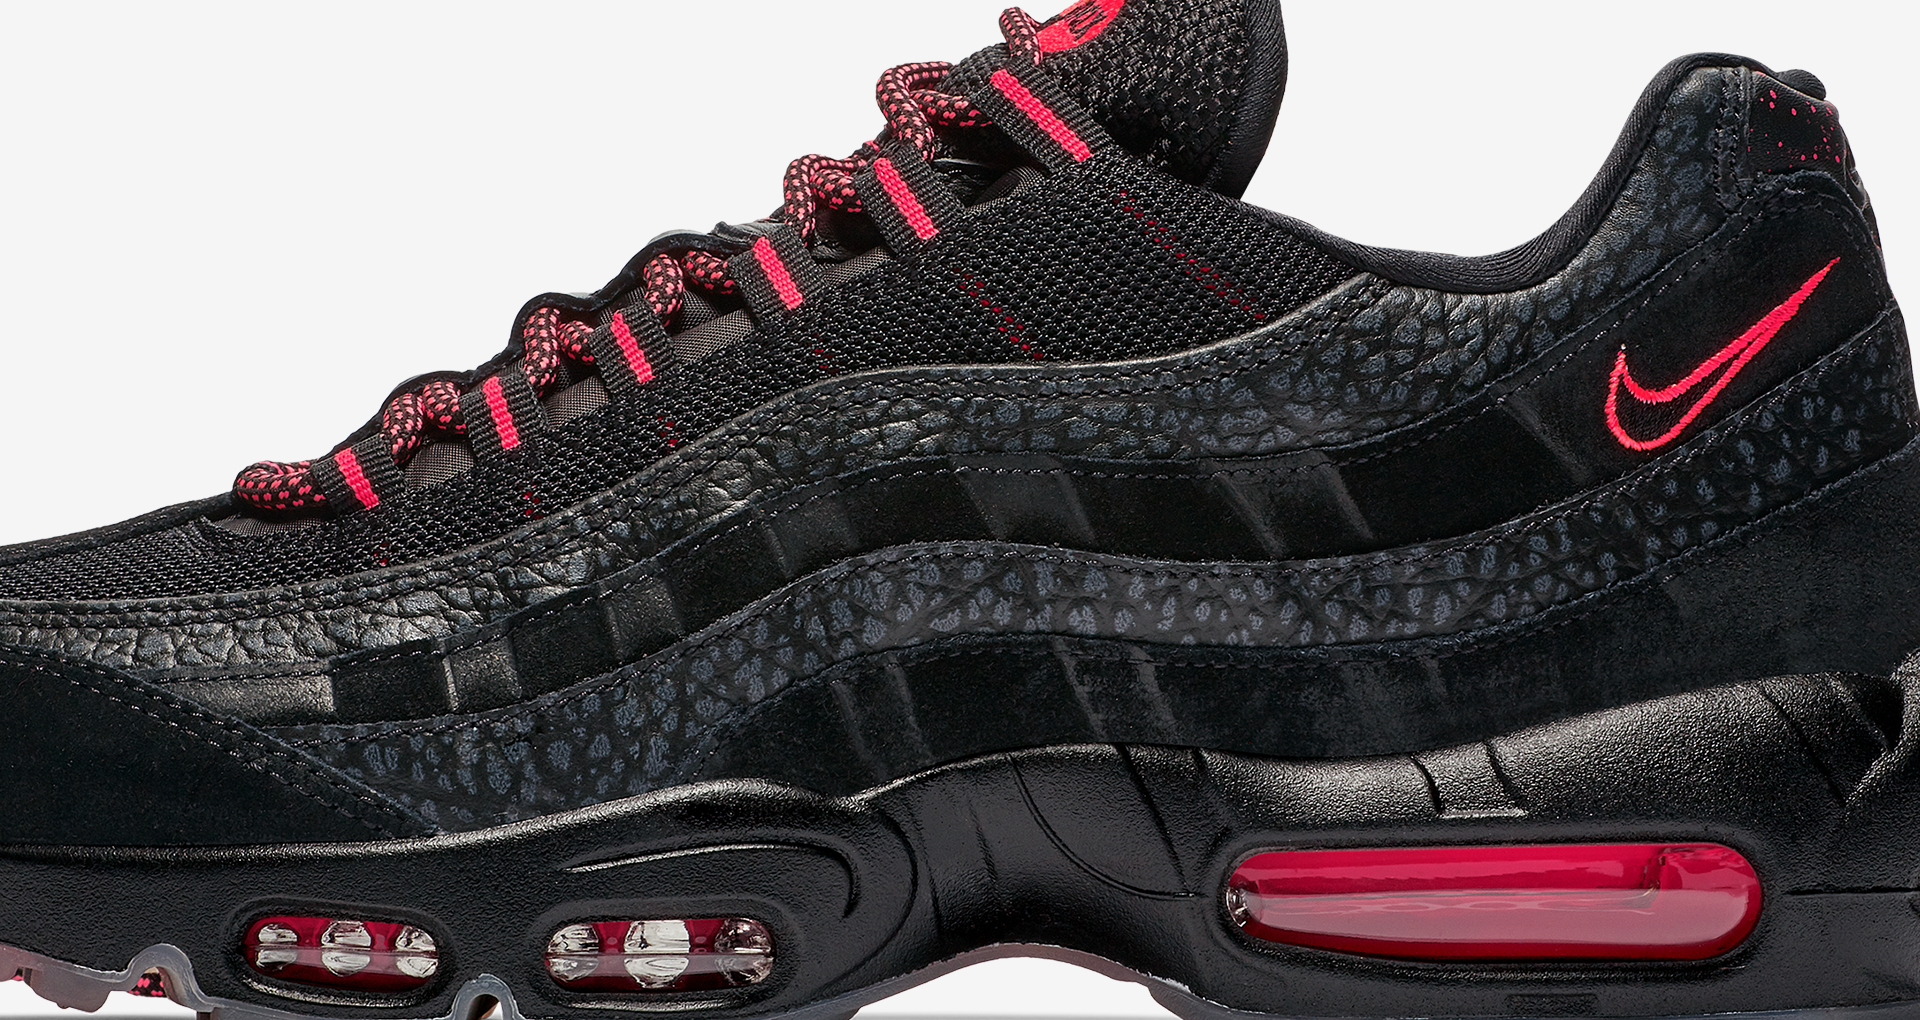 Nike Air Max 95 'Black Infrared' Release Date. Nike SNEAKRS NL